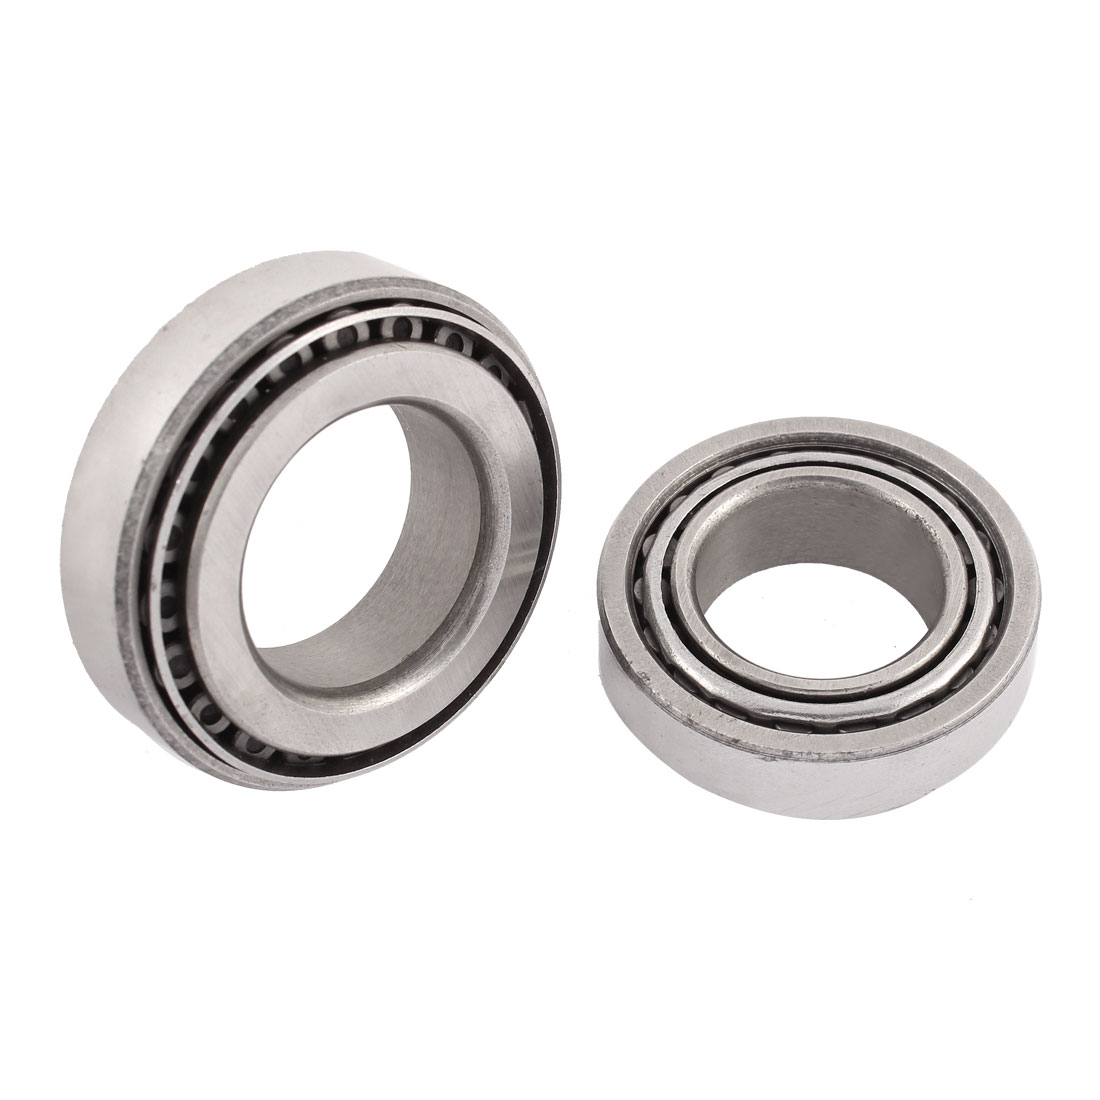 2 Pcs Motorcycle Motorbike Deep Groove Ball Bearings CB300 CB500